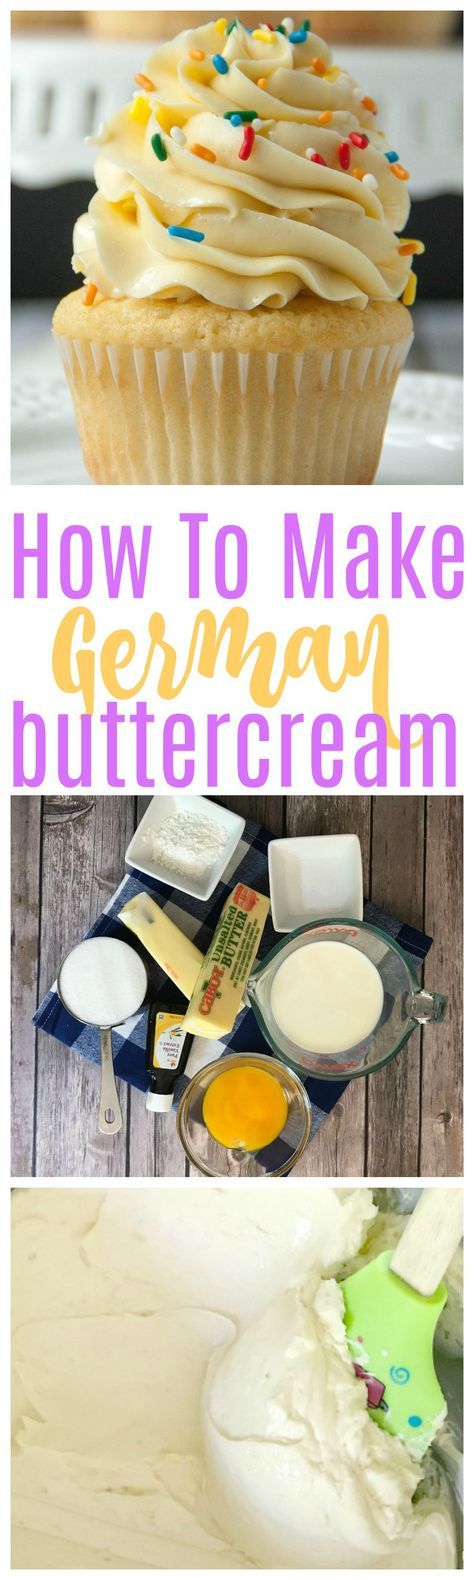 how to make german buttercream | german buttercream | buttercream | buttercream recipes | frosting recipes | frosting | cupcakes |